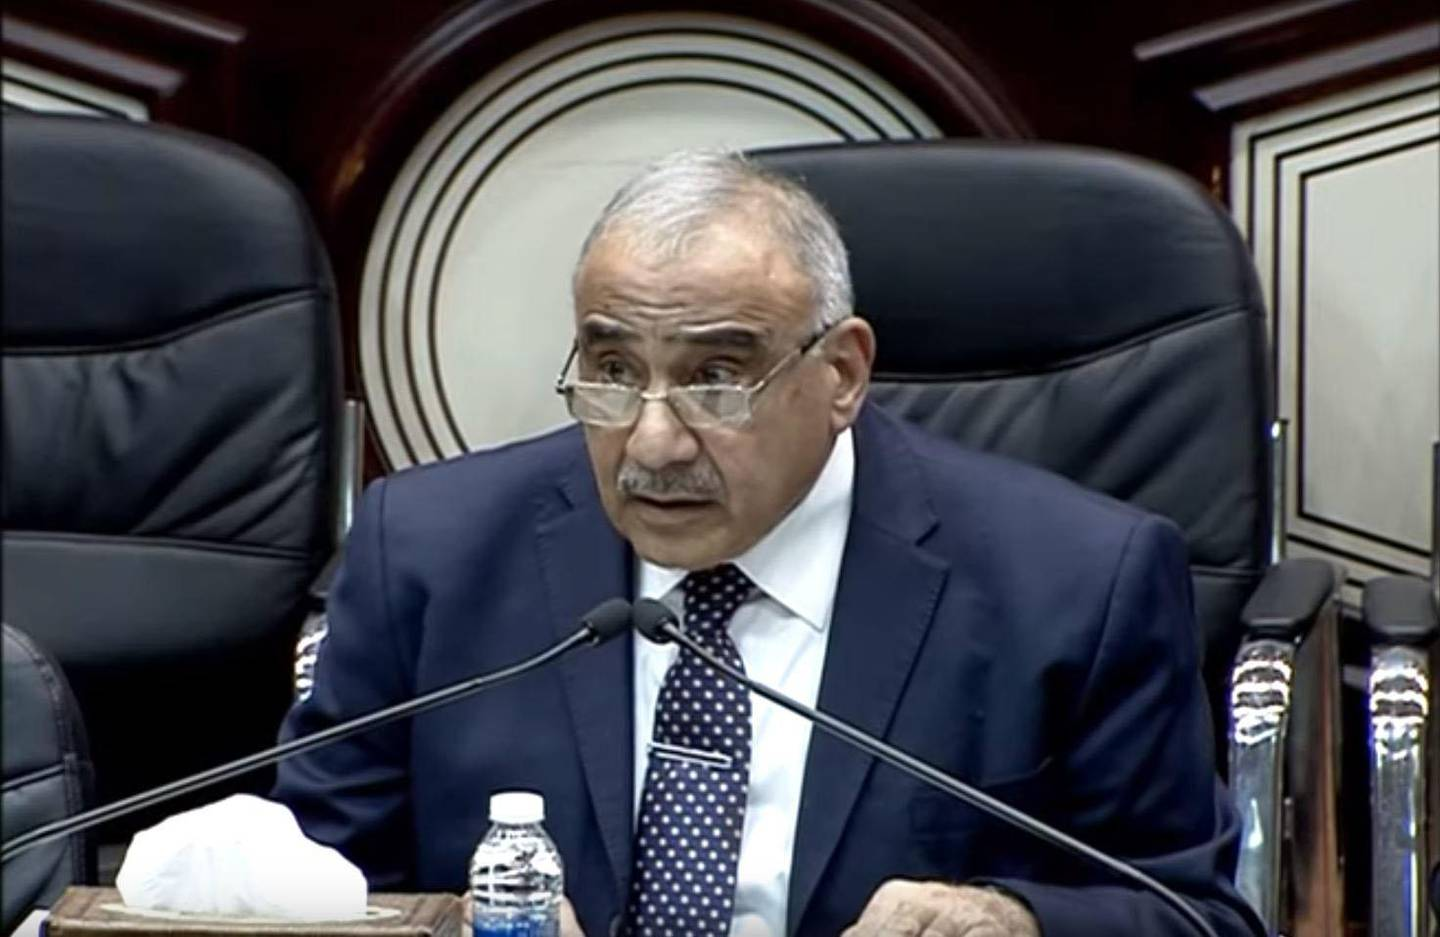 A screenshot from Youtube video uploaded by the Iraqi Parliament showing Prime Minister Adel Abdul Mahdi speaking at the parliament.